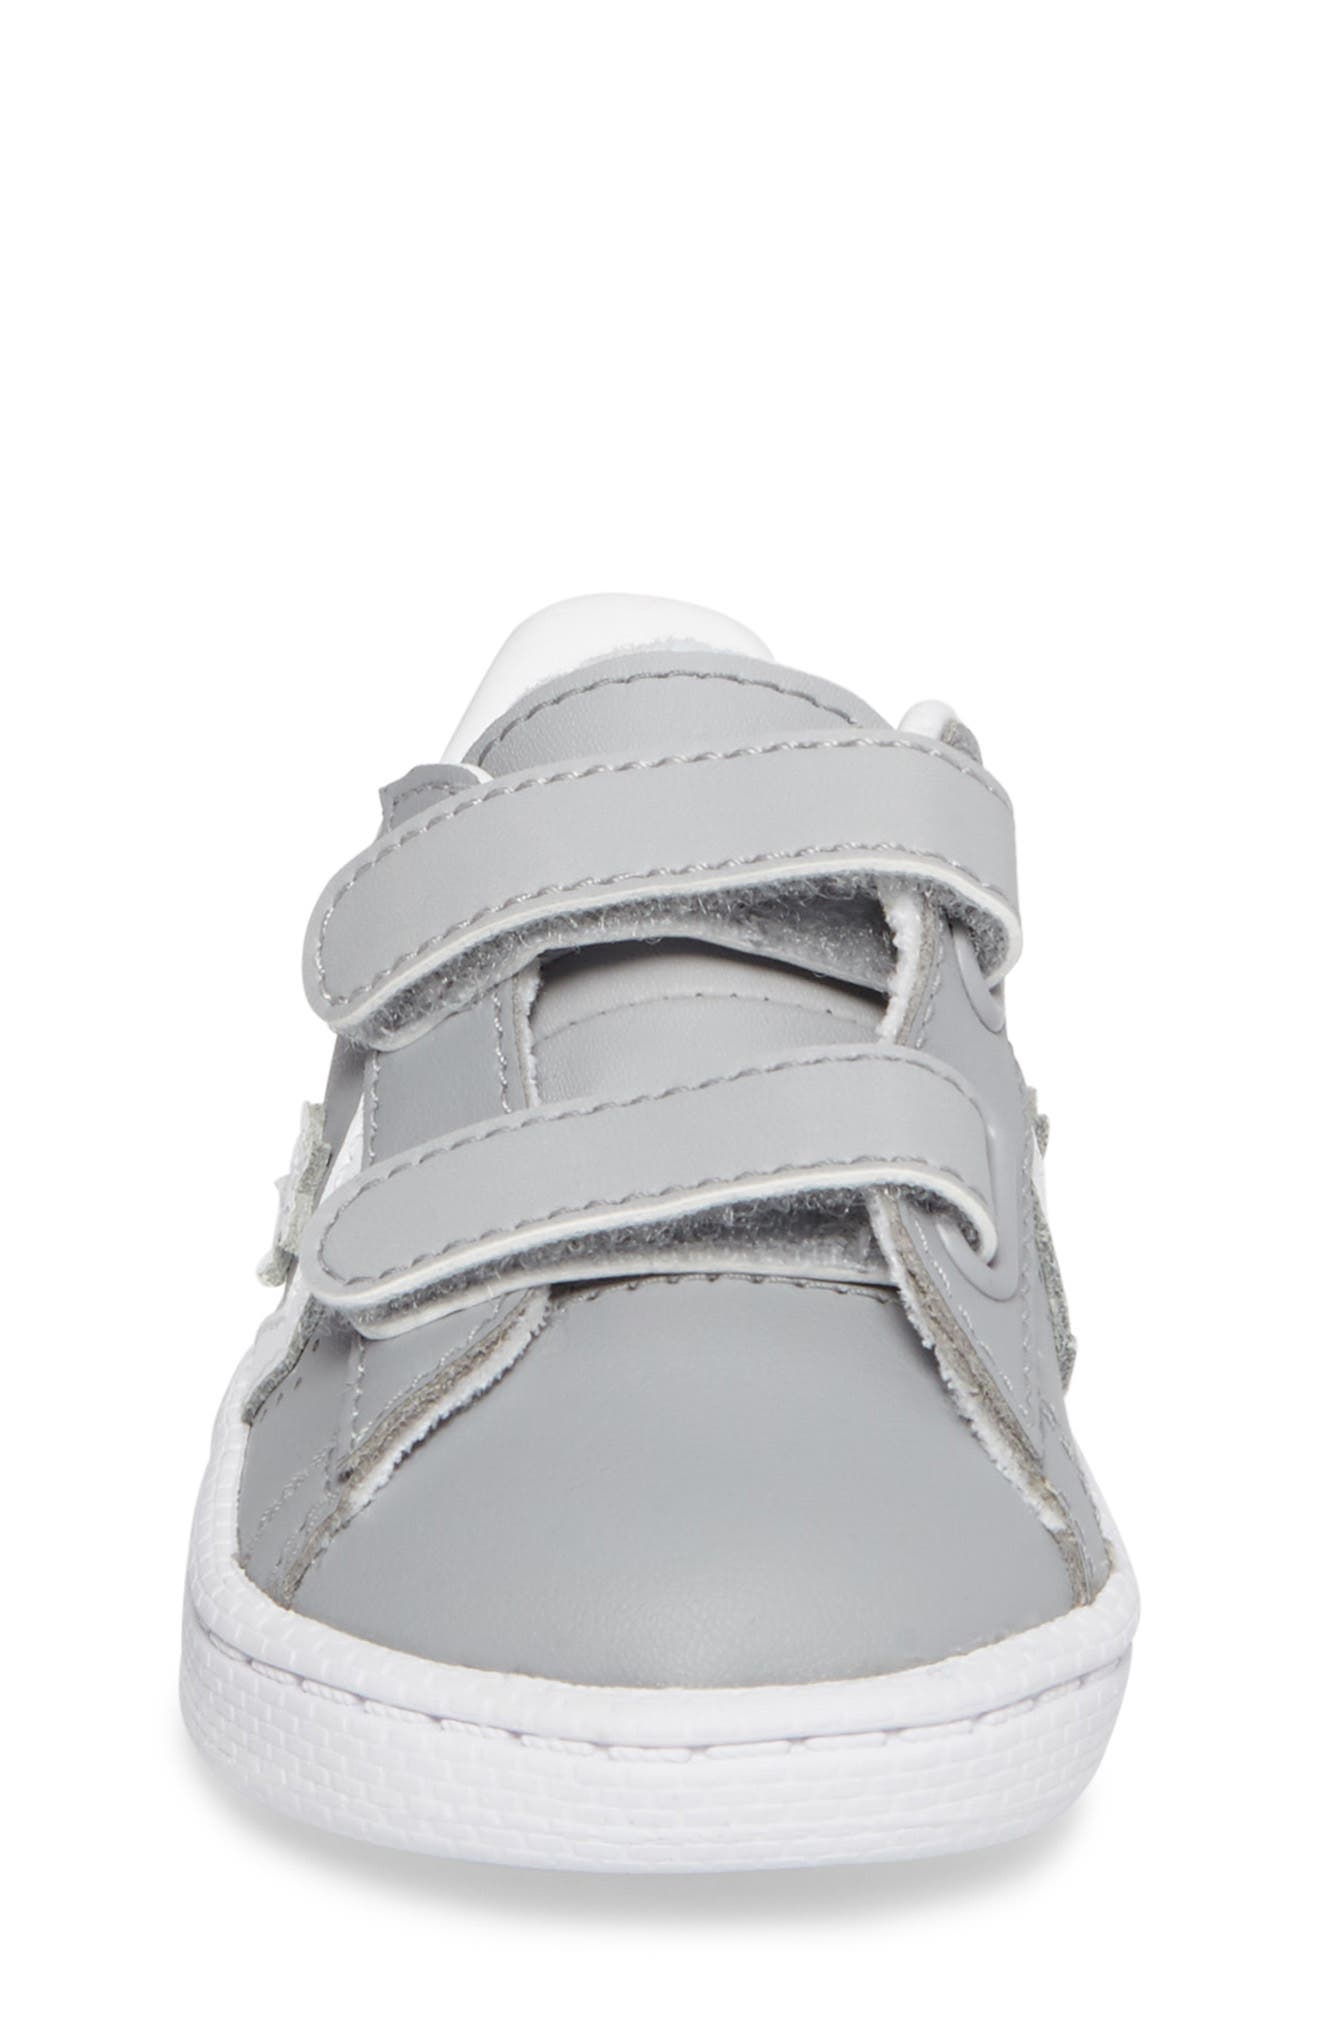 Alternate Image 4  - Converse Pro Leather Low Top Sneaker (Baby, Walker, & Toddler)